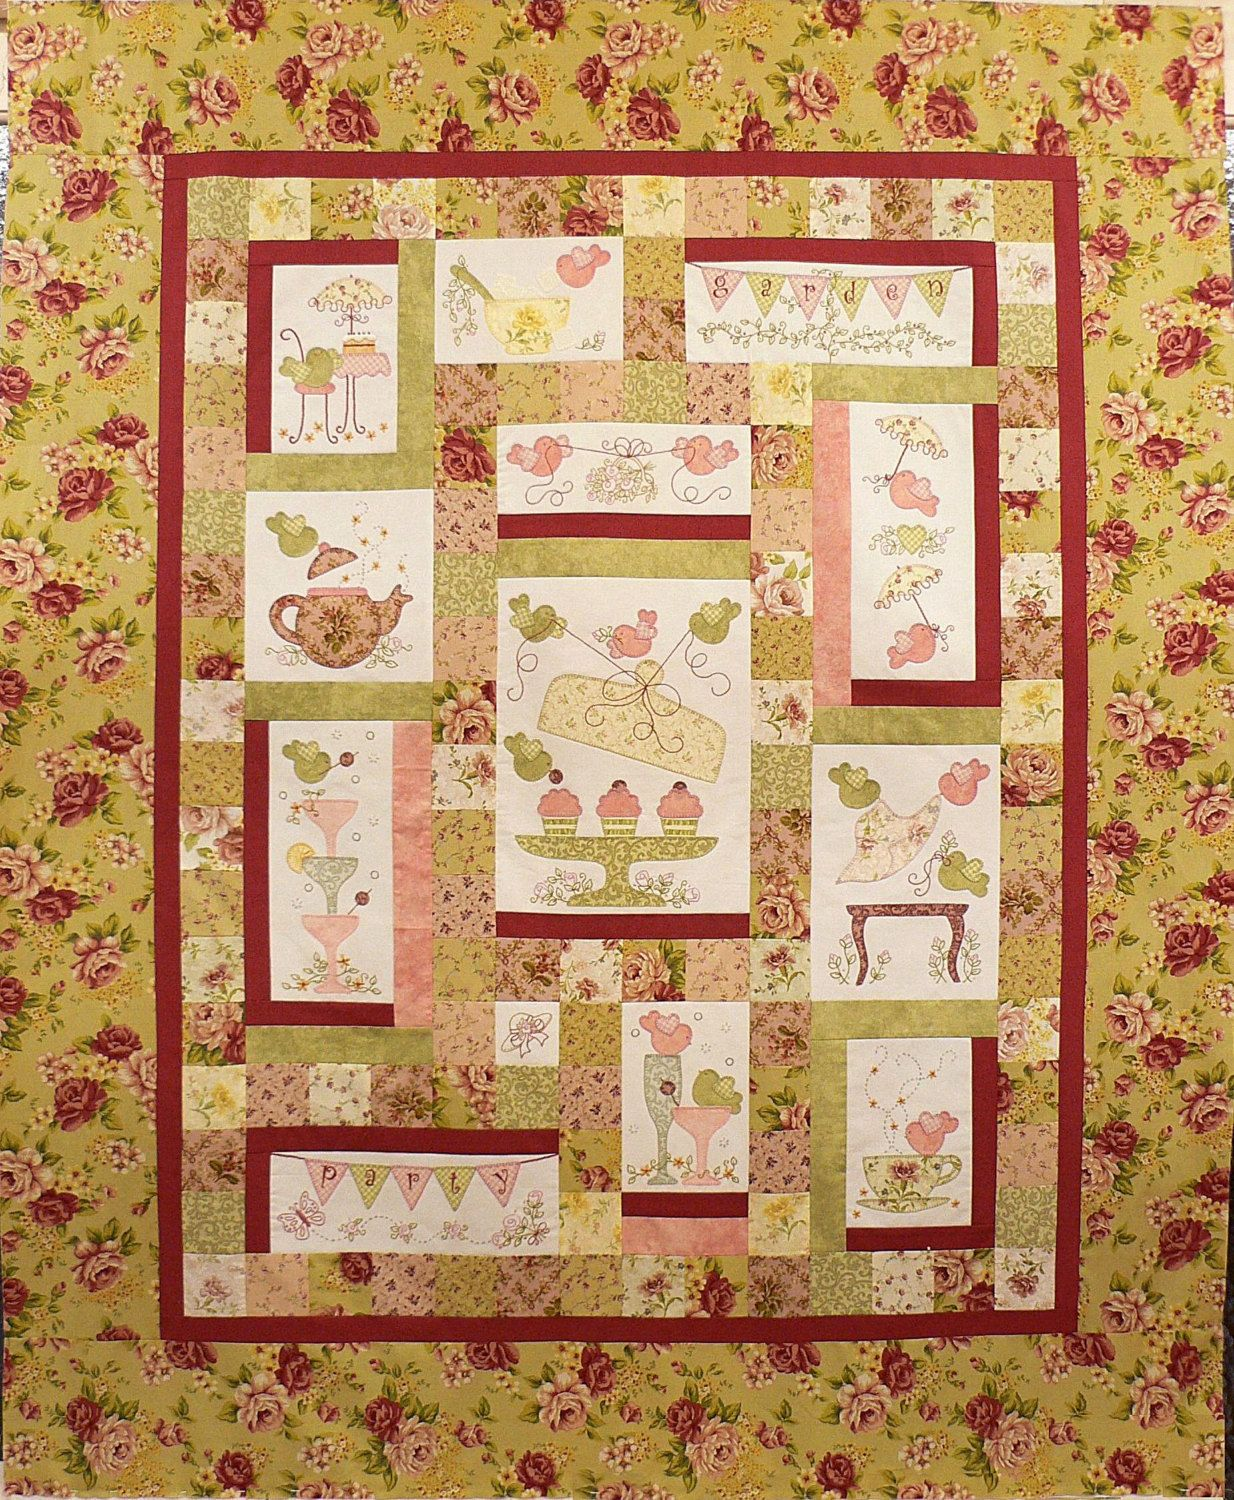 Garden Party Quilt Pattern by Teddlywinks on Etsy | tendidos ... : garden party quilt pattern - Adamdwight.com